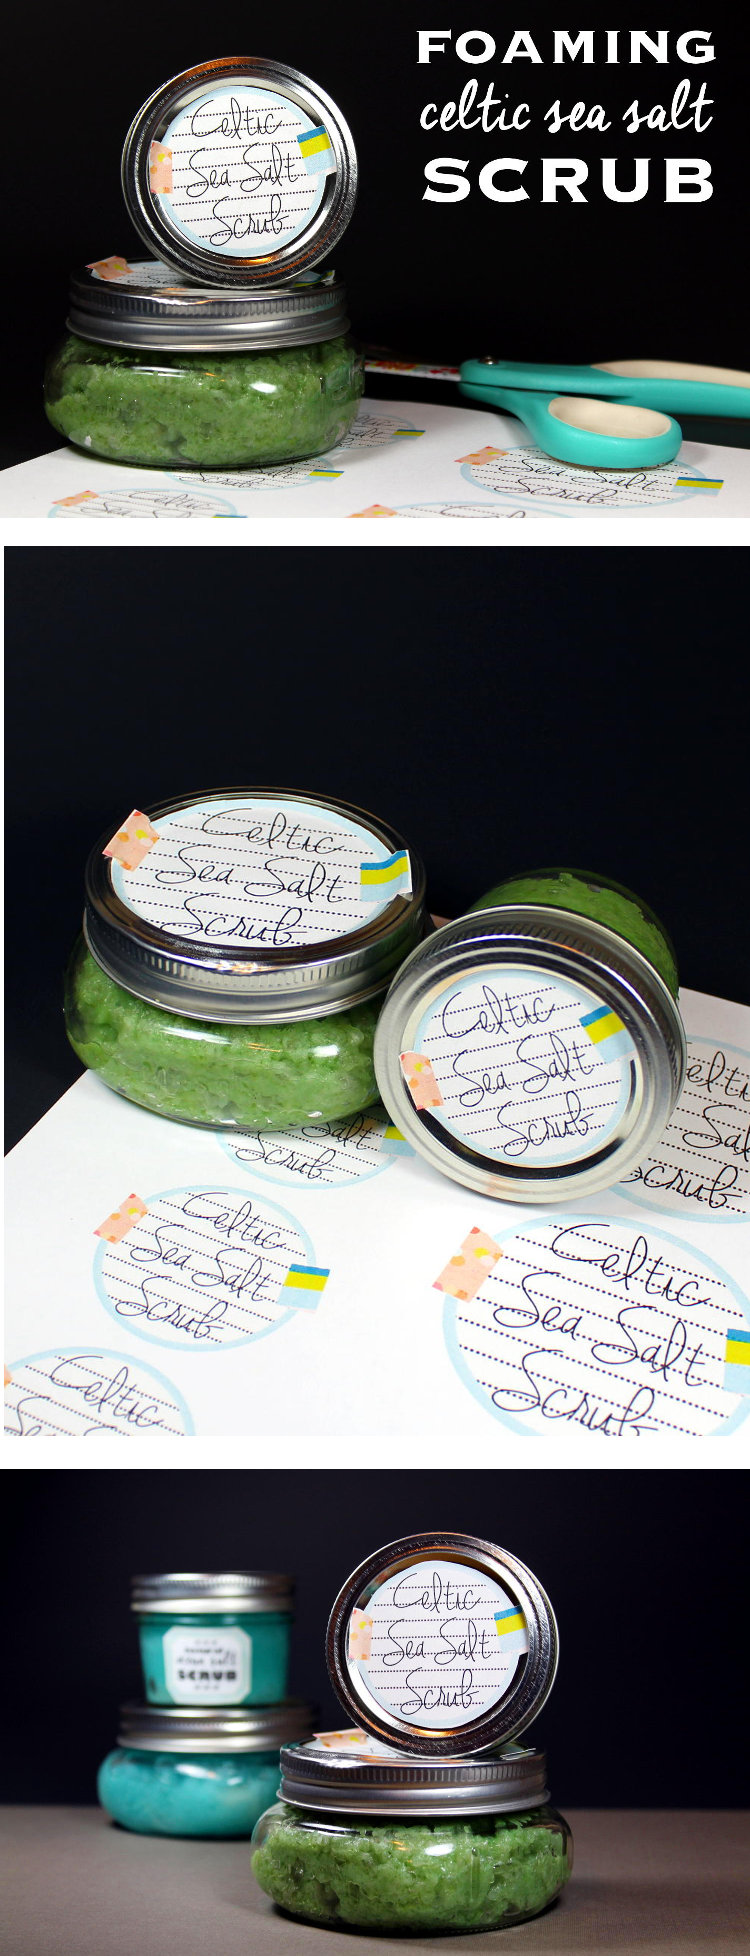 This foaming Celtic sea salt scrub recipe contains light grey Celtic sea salt to moisturize, revitalize, exfoliate, and detox skin and calm inflammation. Plus there are free printable labels for gifting!